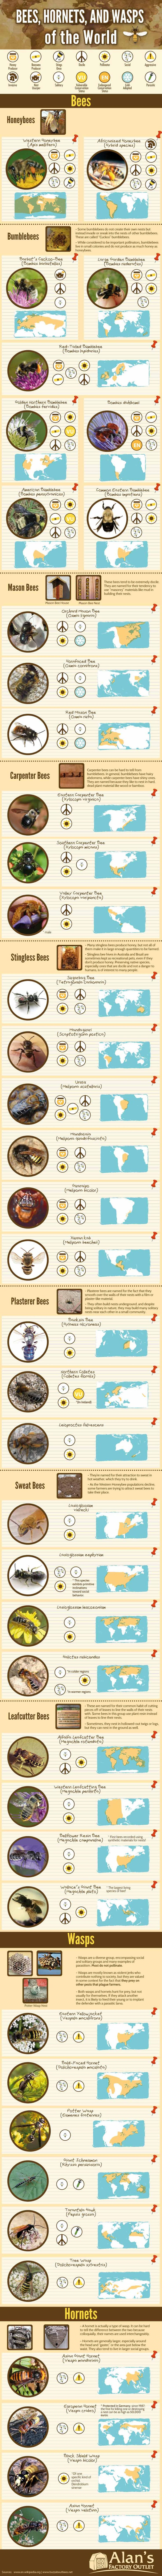 Bees, Hornets, and Wasps of the World